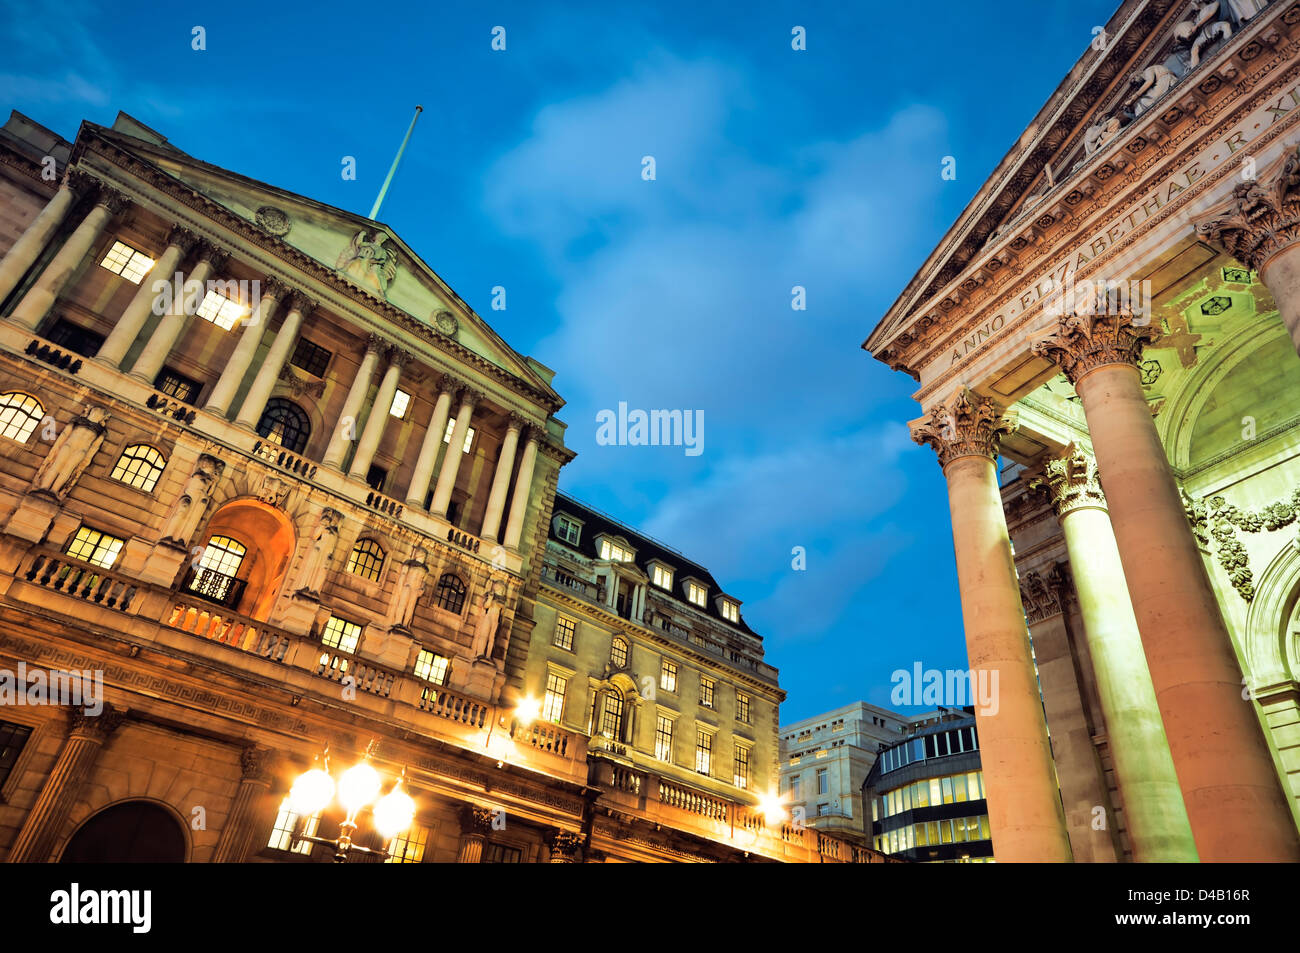 Bank of England and Royal Exchange at night. - Stock Image